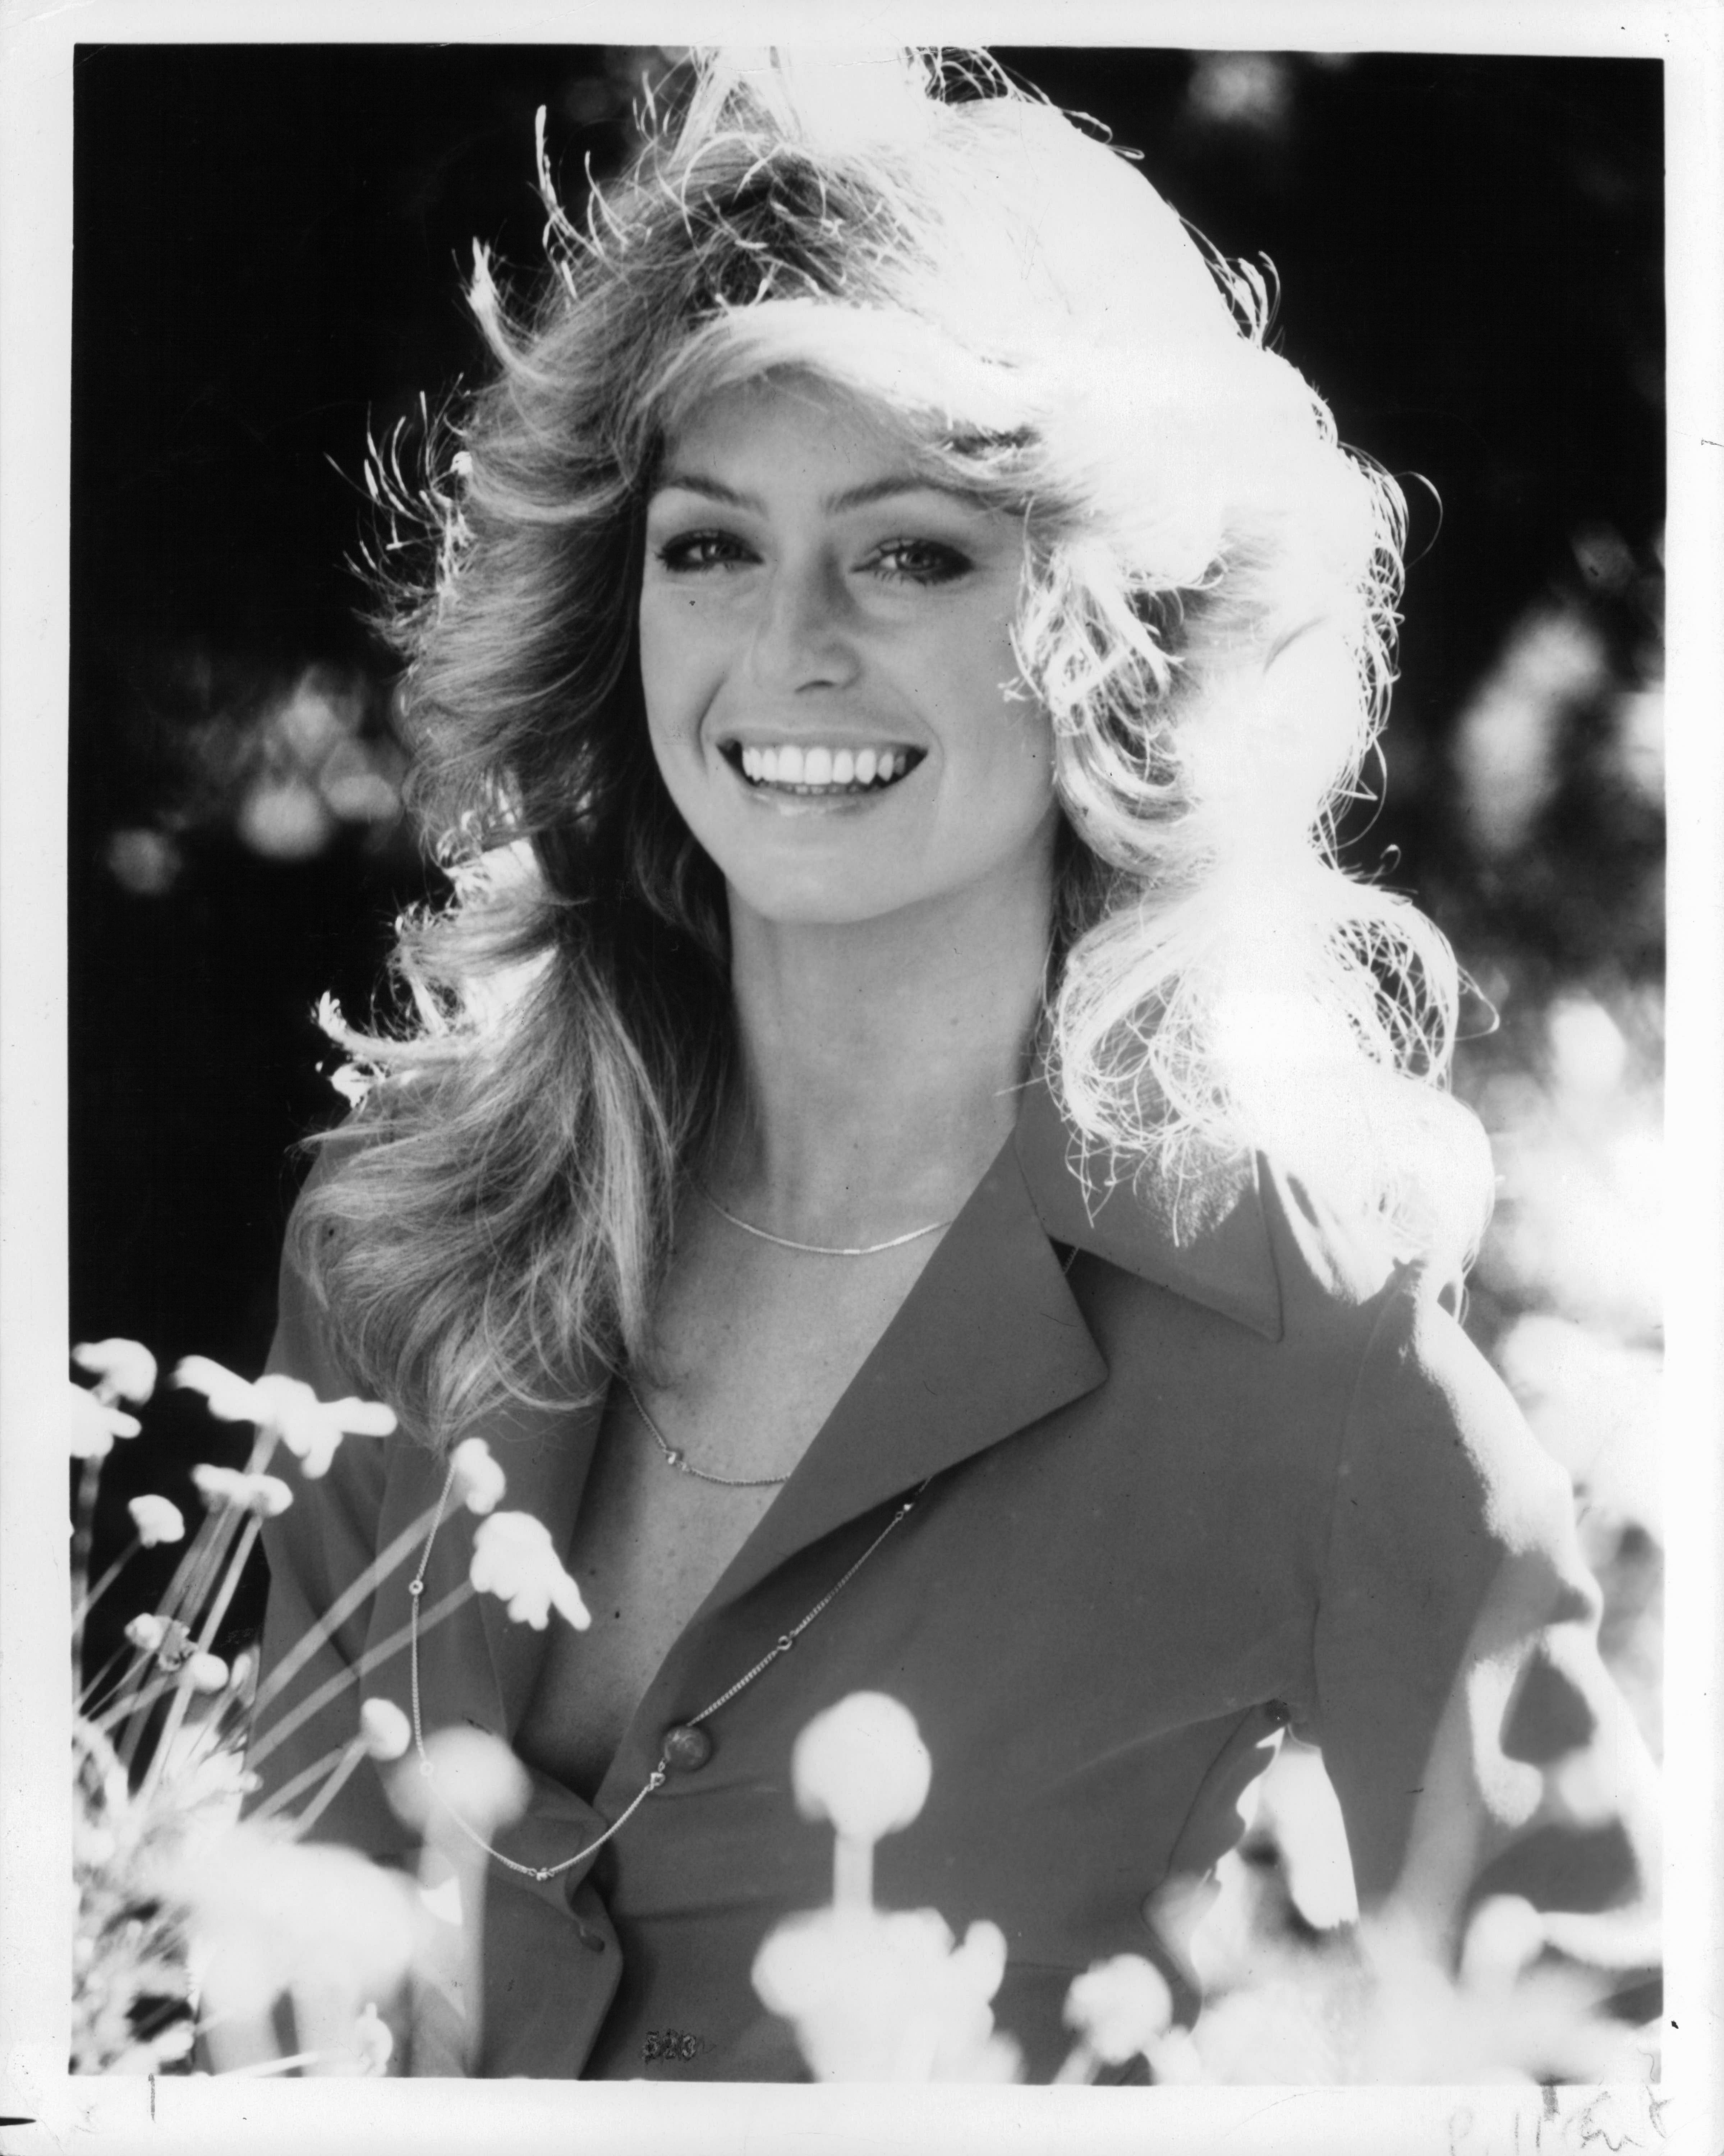 Farrah Fawcett maintained close bonds with family, friends after becoming famous, says pal: 'She loved being part of a family'